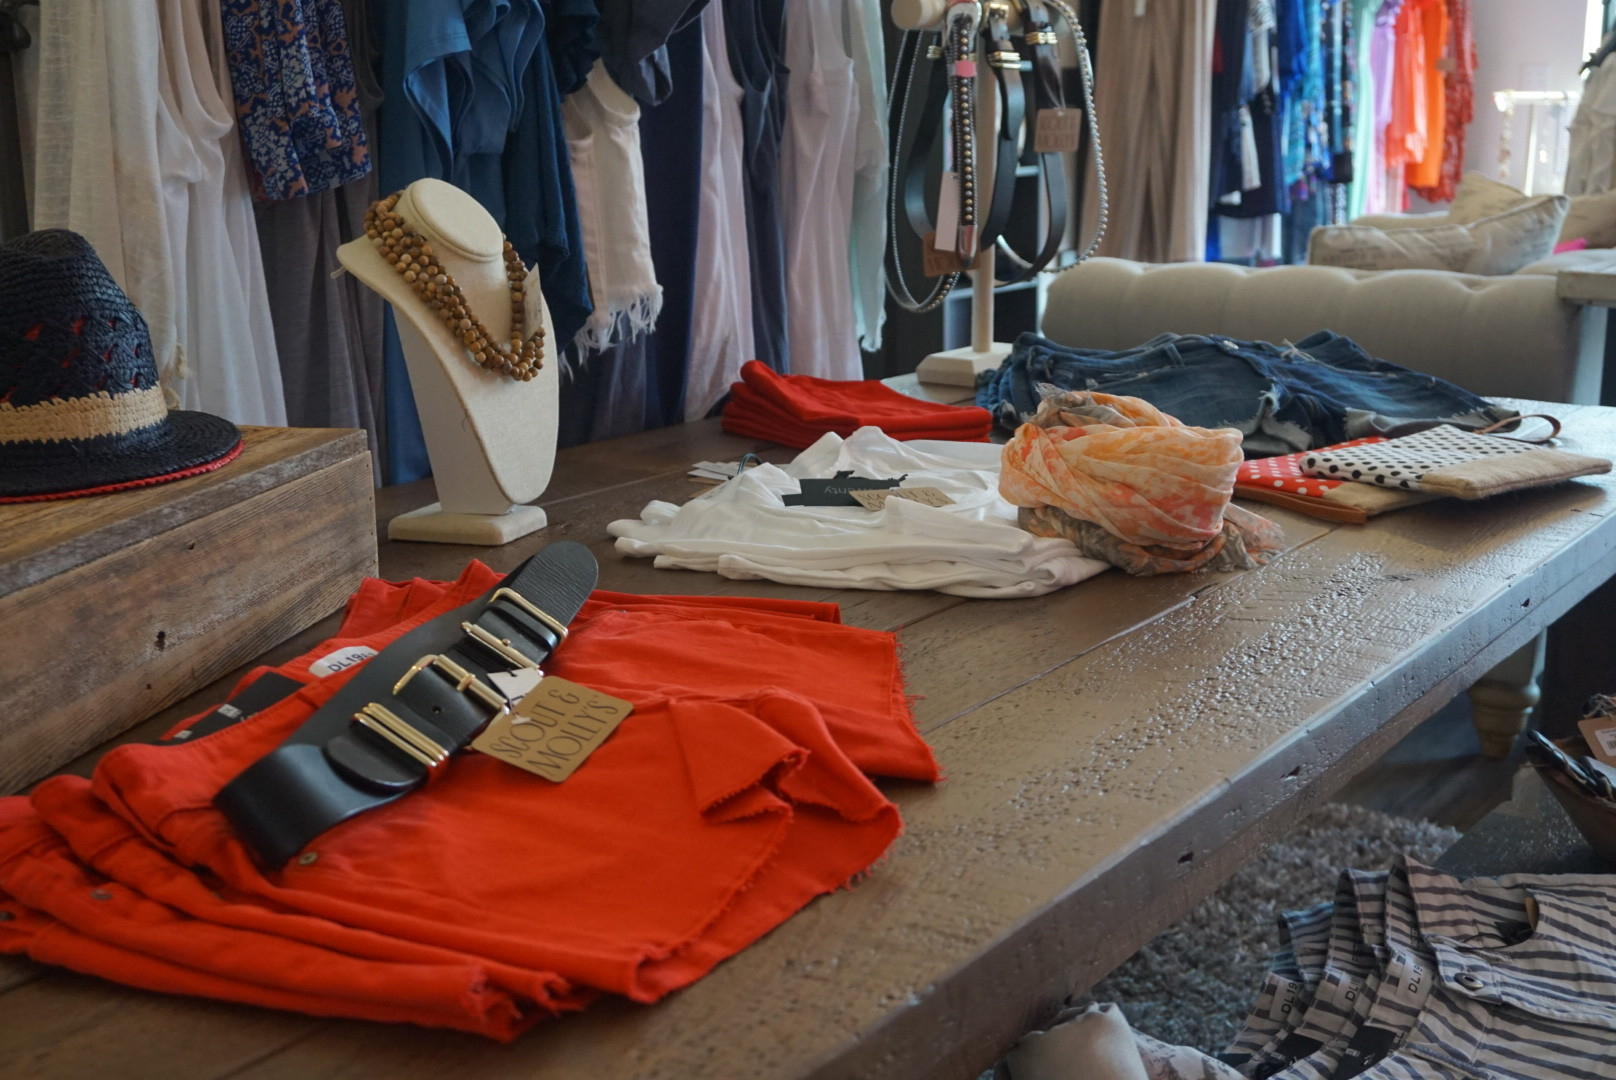 Scout & Molly's Boutique offers a range of clothing, shoes and accessories for women.